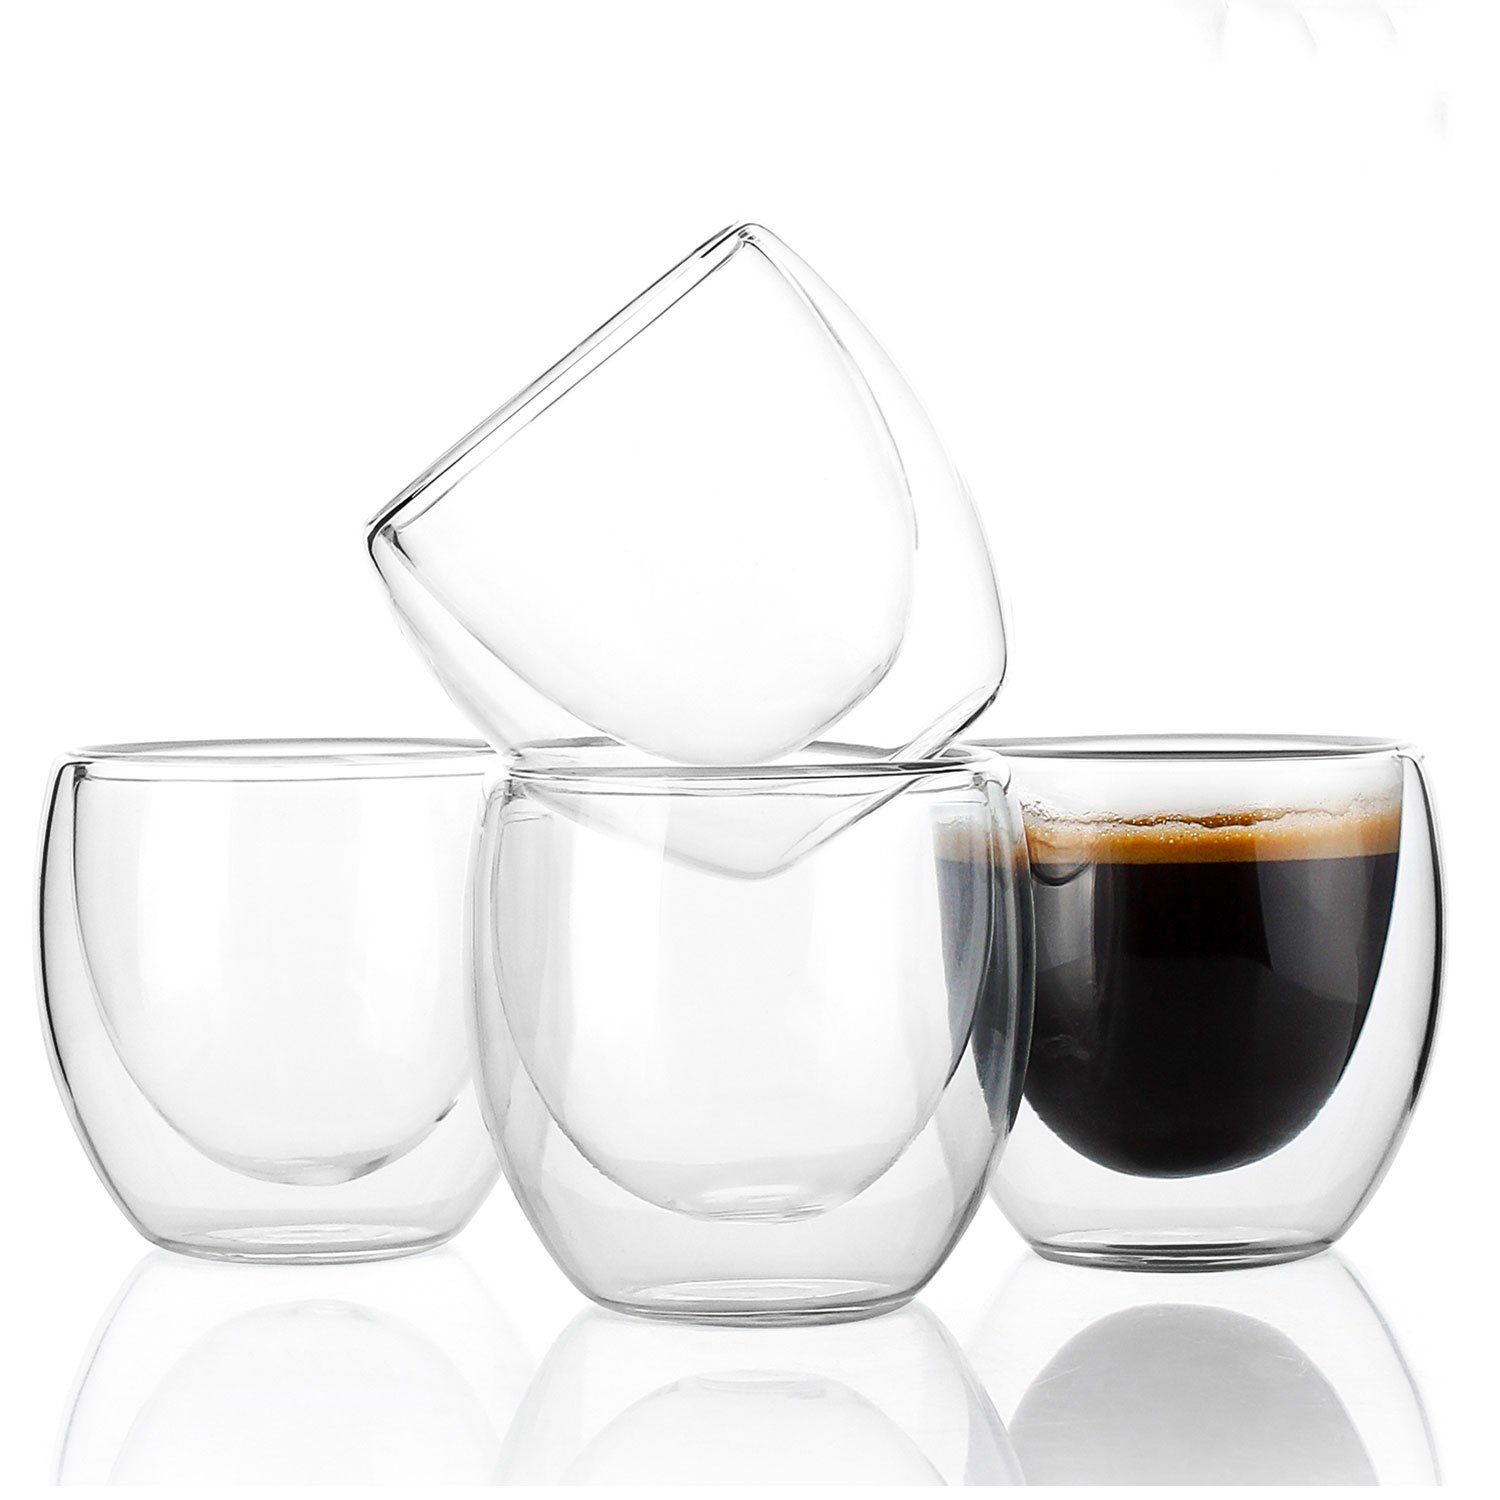 Sweese 4603 Glass Espresso Cups - Double Wall Insulated Glasses without Handles - 3.4 Ounces, Set of 4